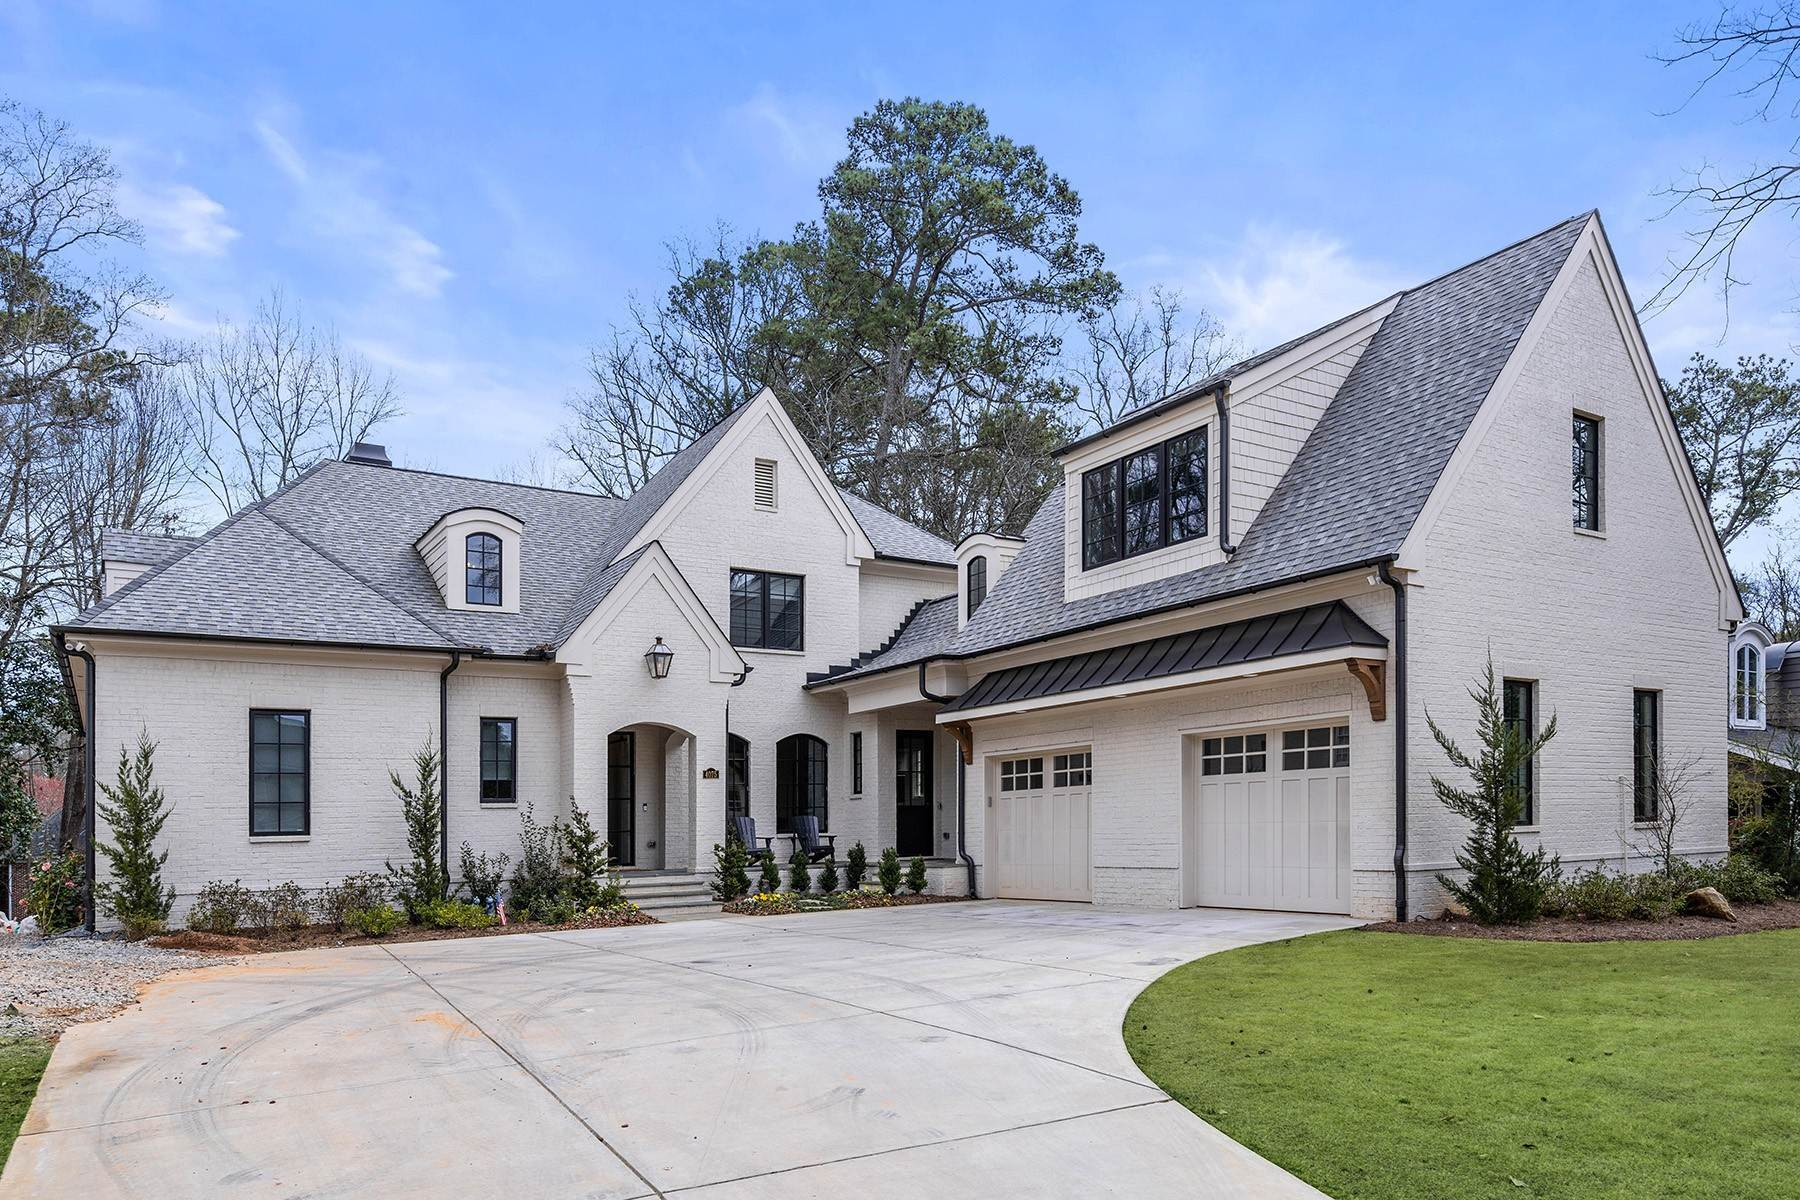 Single Family Homes for Sale at Luxury and Modern Living in Custom Designed Historic Brookhaven Home 4075 Peachtree Dunwoody Road NE Atlanta, Georgia 30319 United States